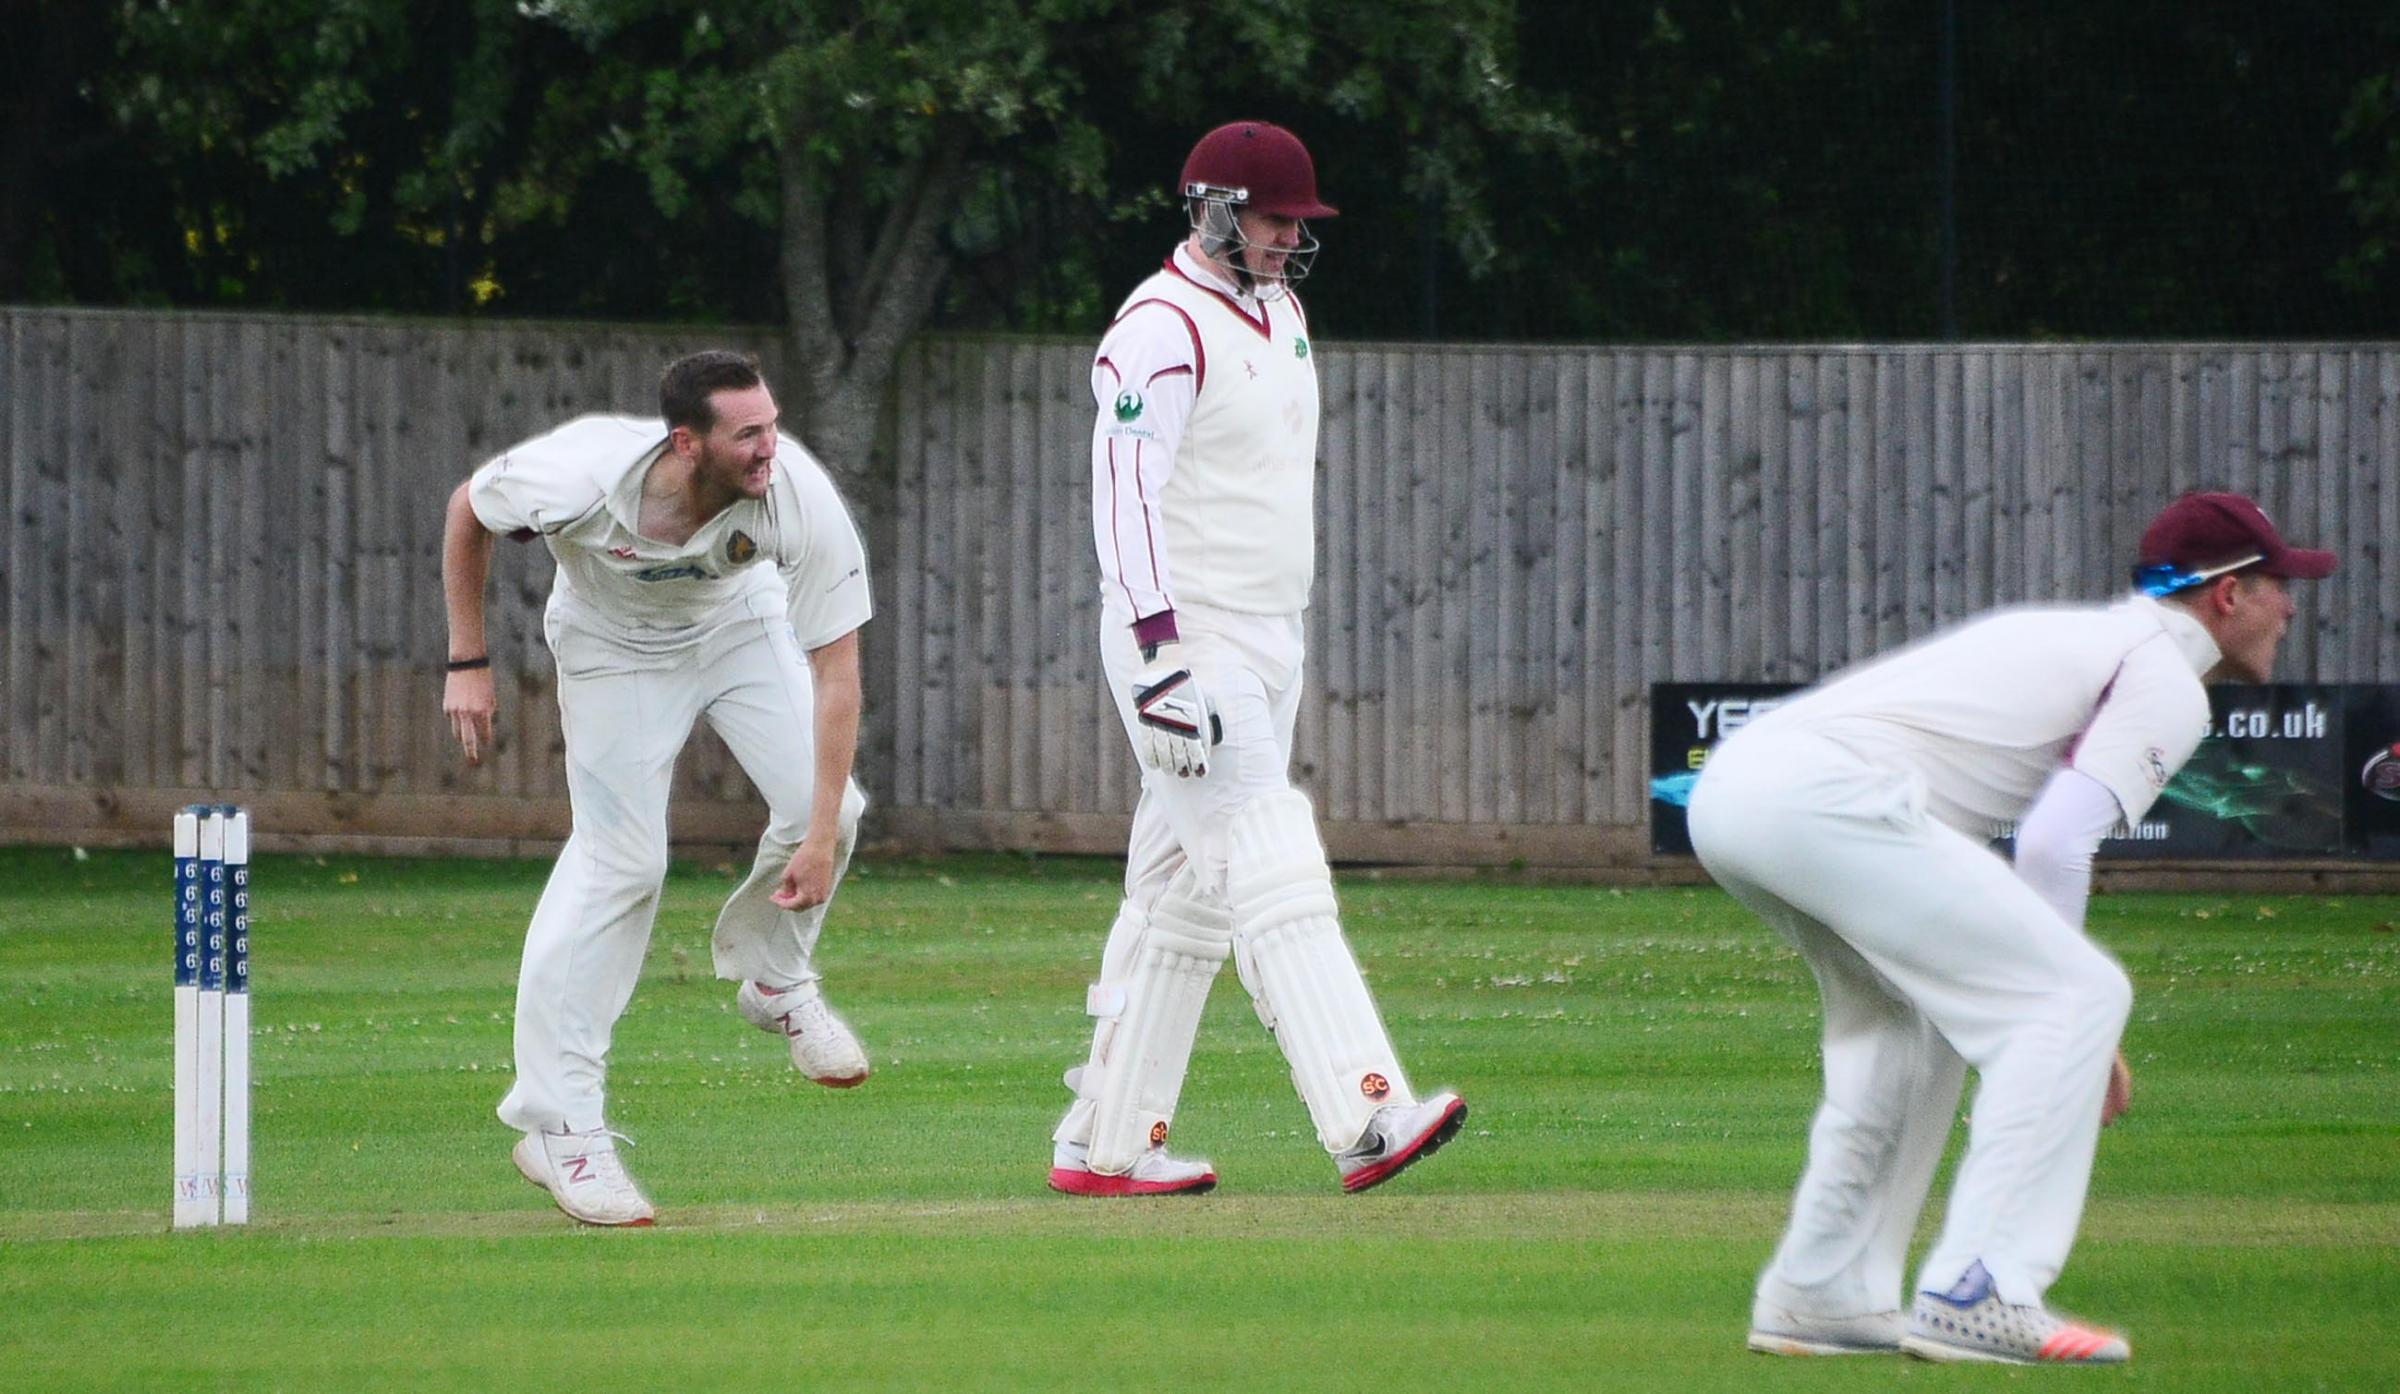 IN-FORM: Taunton St Andrew's all-rounder Lloyd Alley starred with bat and ball in their crucial victory over Bishopston on Saturday.